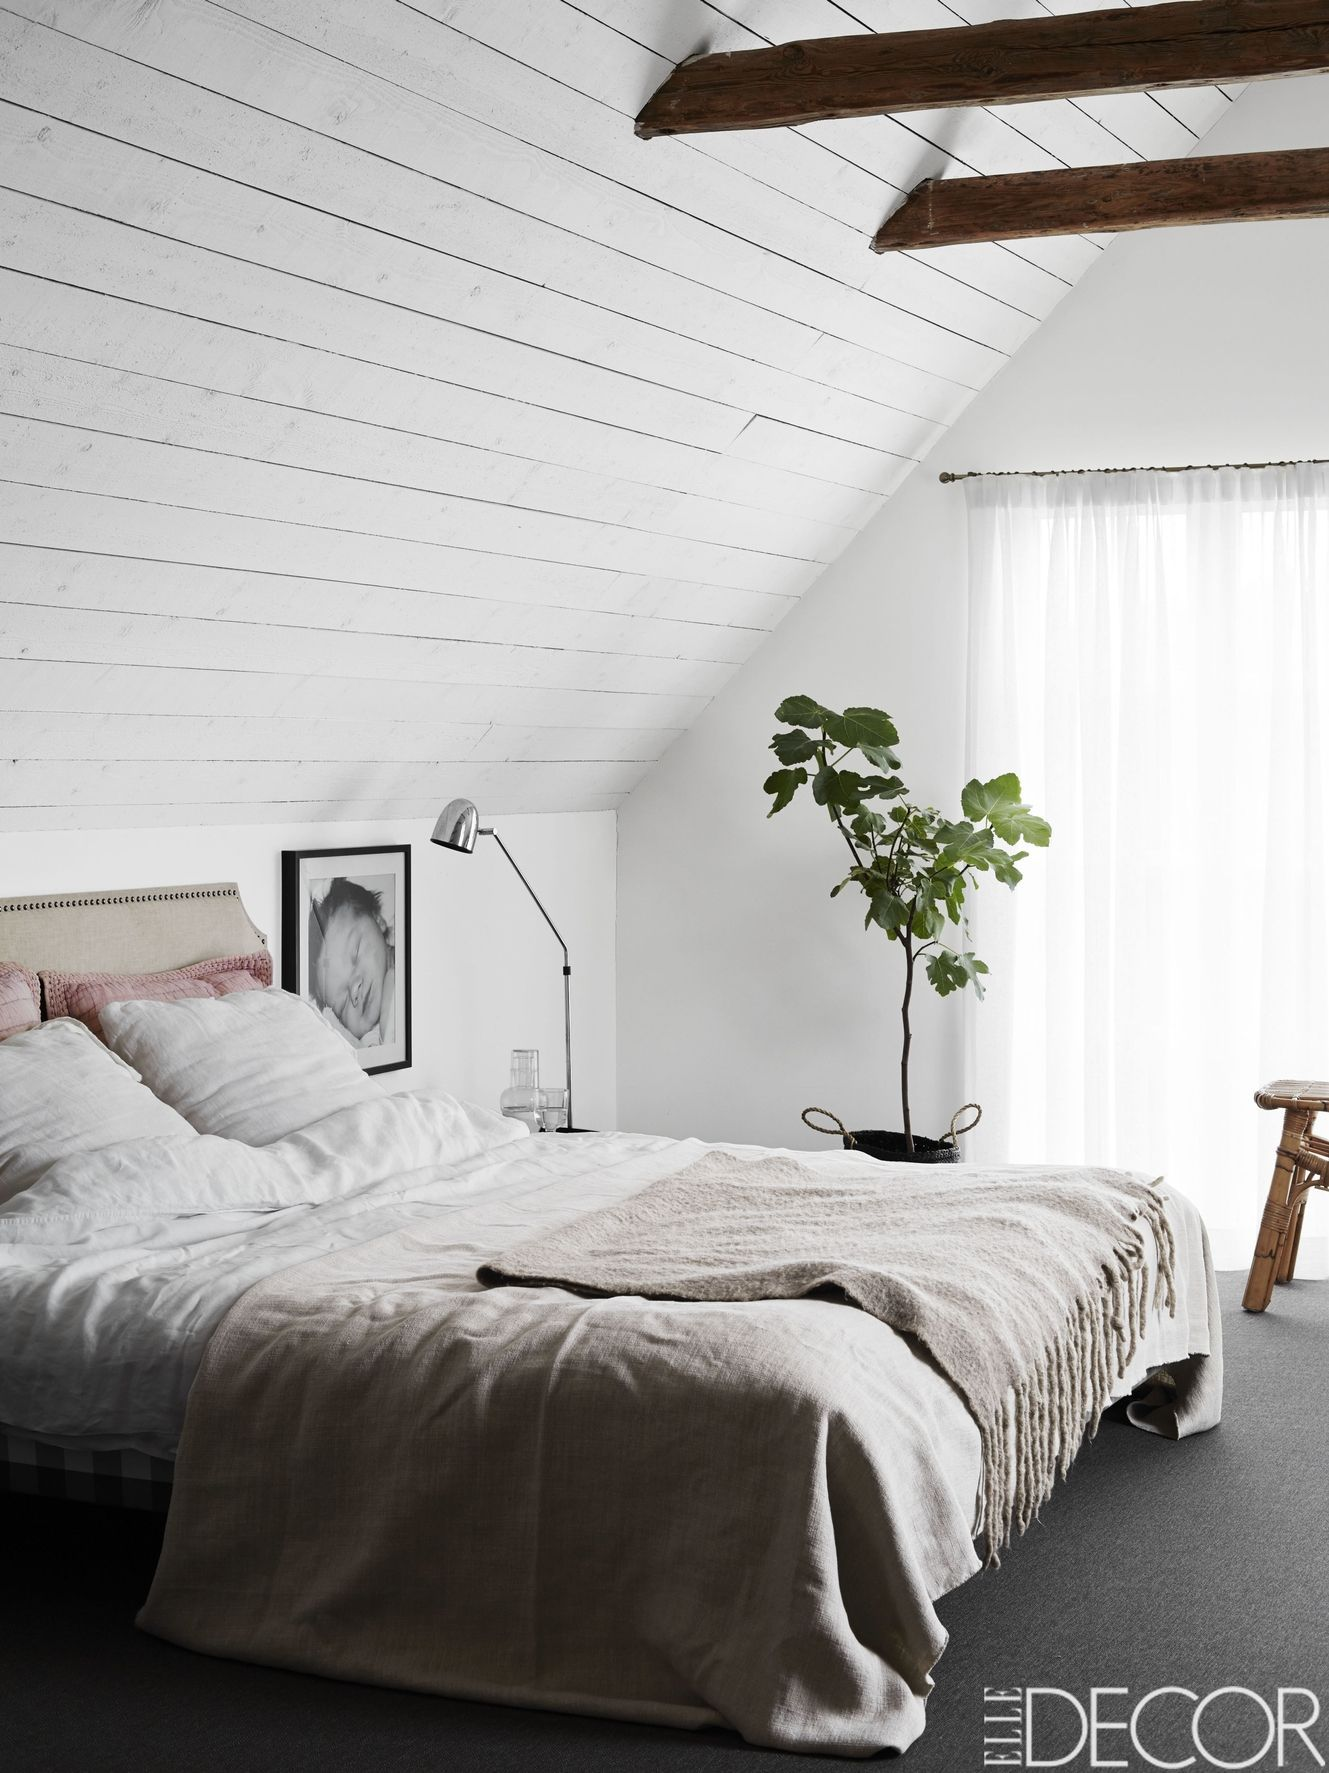 Ideas For Bedrooms 50 Small Bedroom Design Ideas Decorating Tips For Small Bedrooms